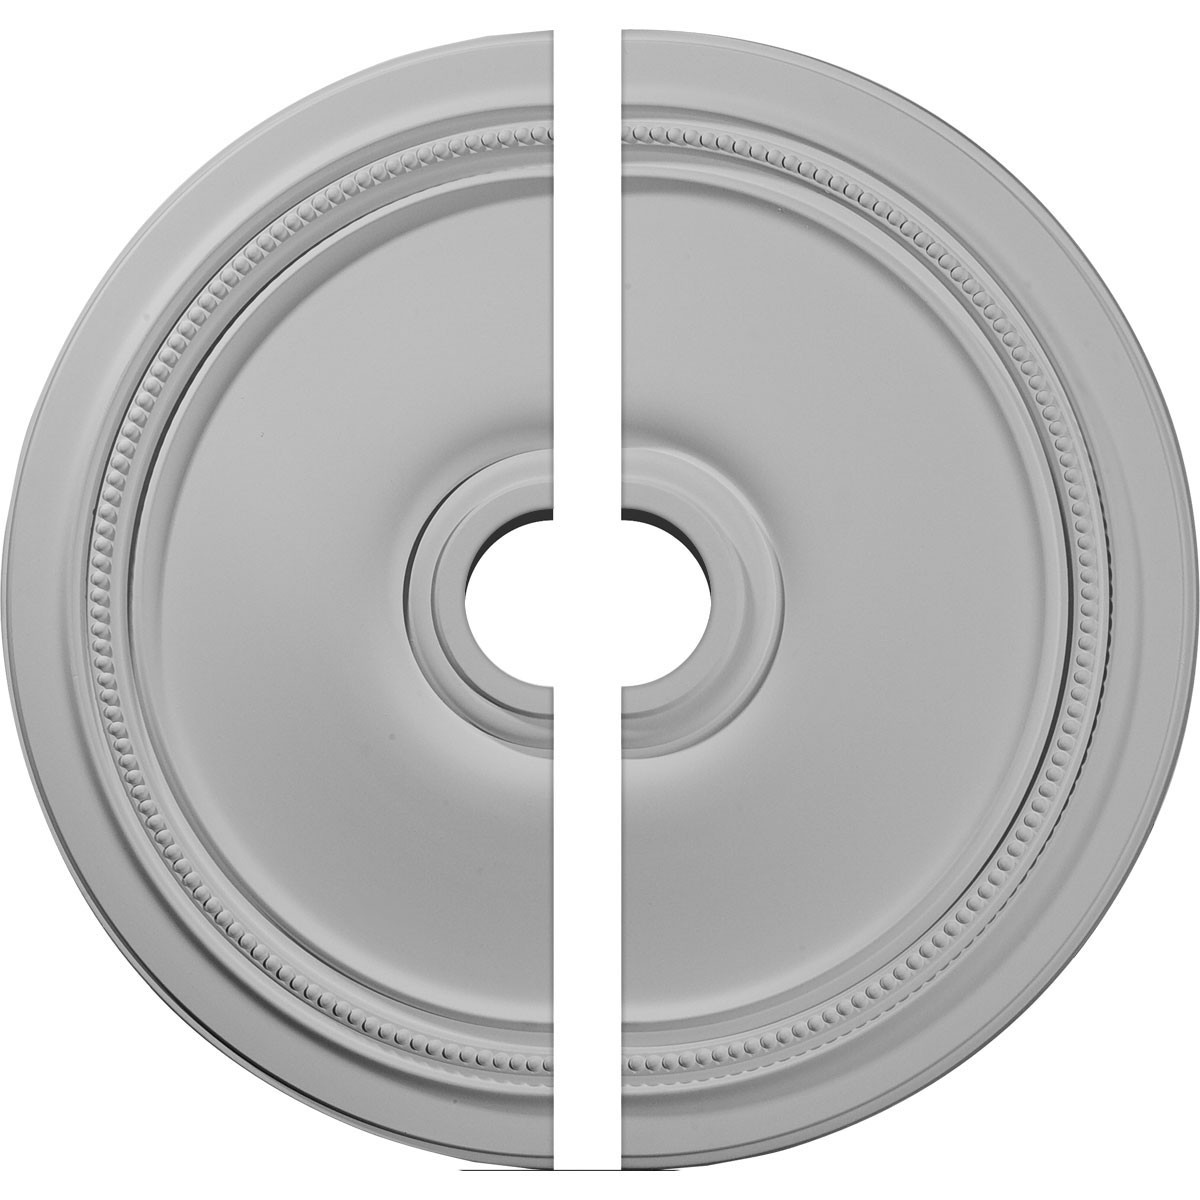 """EM-CM24DI2 - 24""""OD x 3 5/8""""ID x 1 1/4""""P Diane Ceiling Medallion, Two Piece (Fits Canopies up to 6 1/4"""")"""